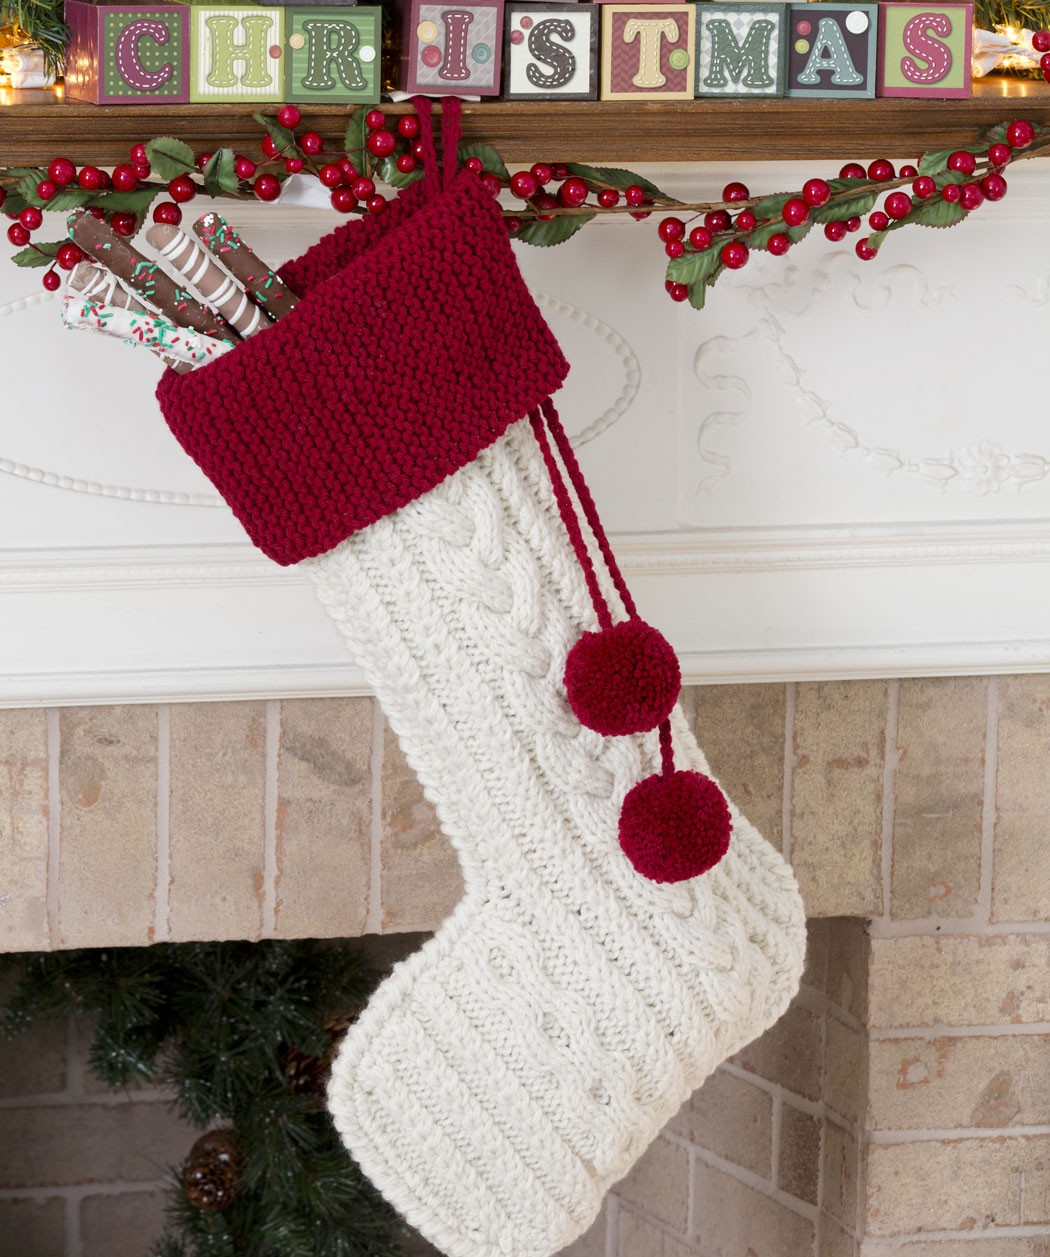 Knitting Christmas Stocking Pattern : Knitted Christmas Stocking Patterns A Knitting Blog